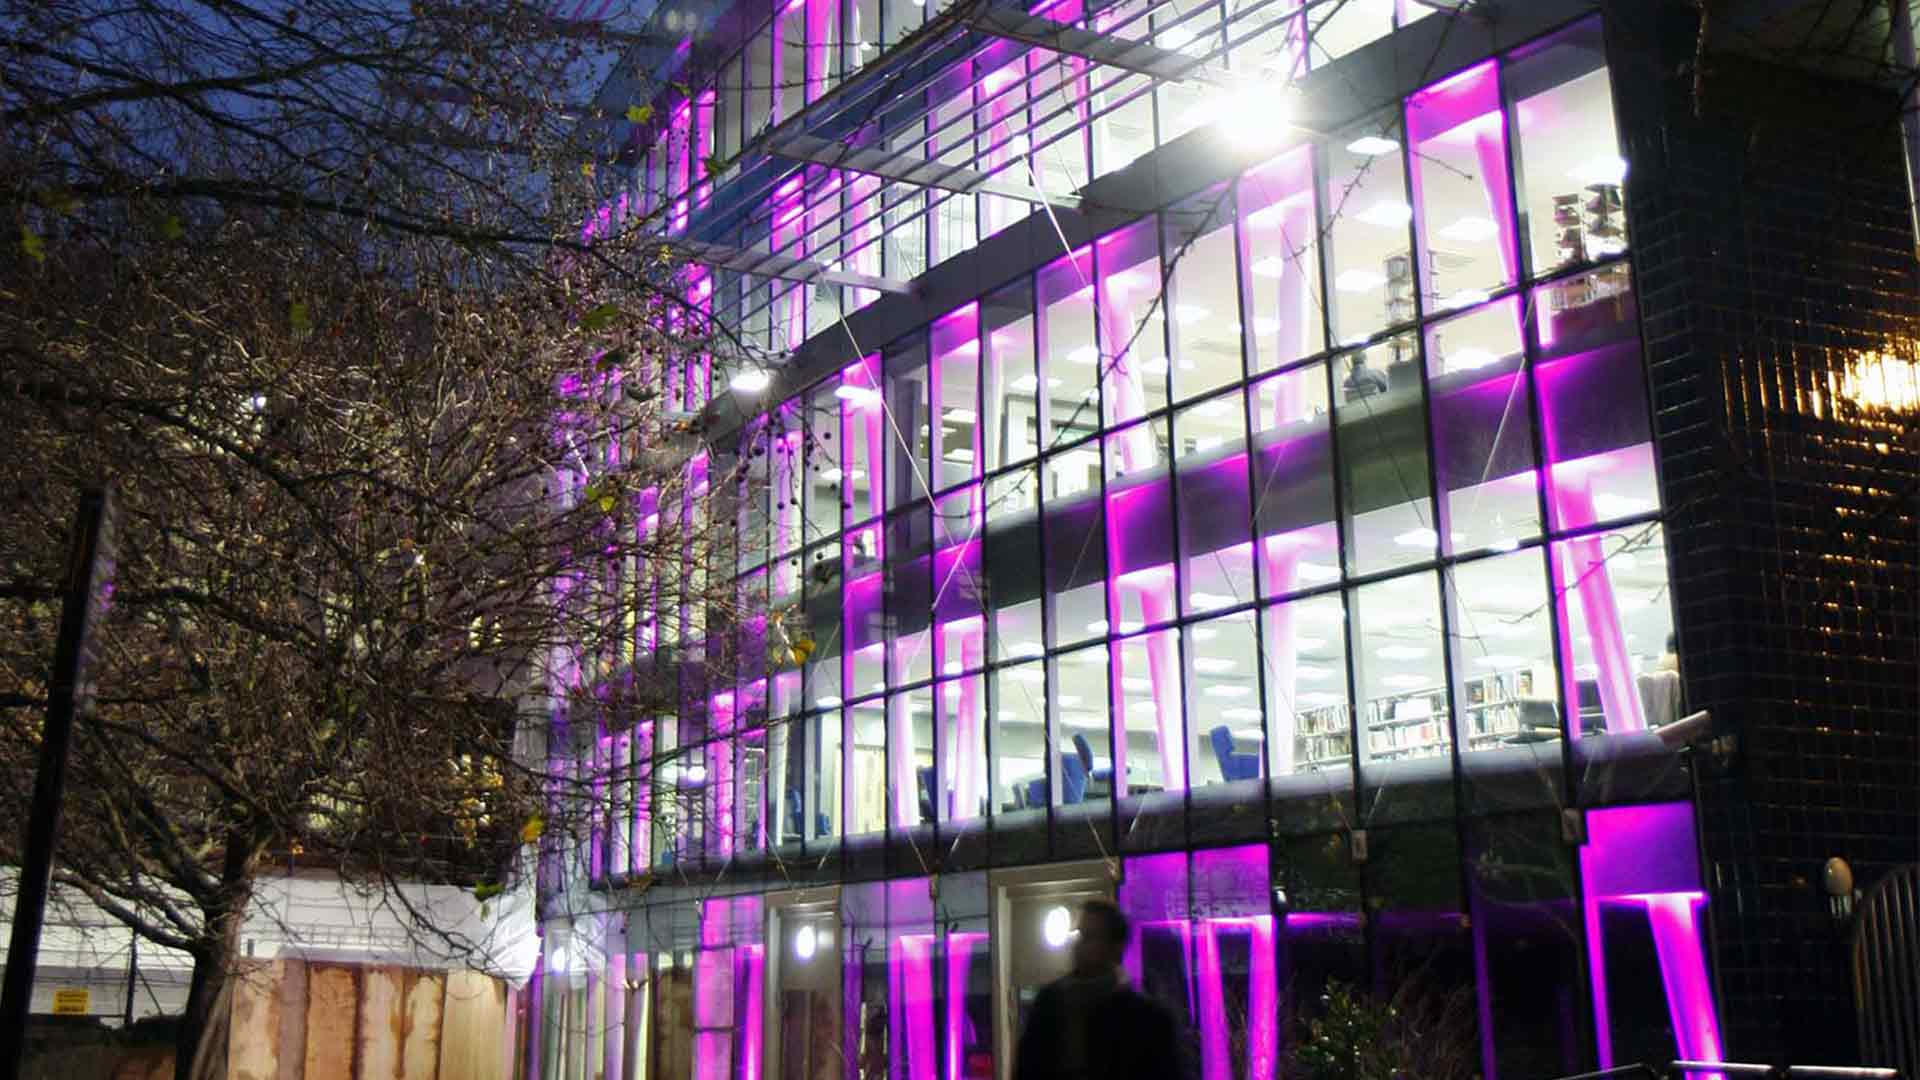 Feature Lighting Design New Building Exterior Purple Illumination Nulty